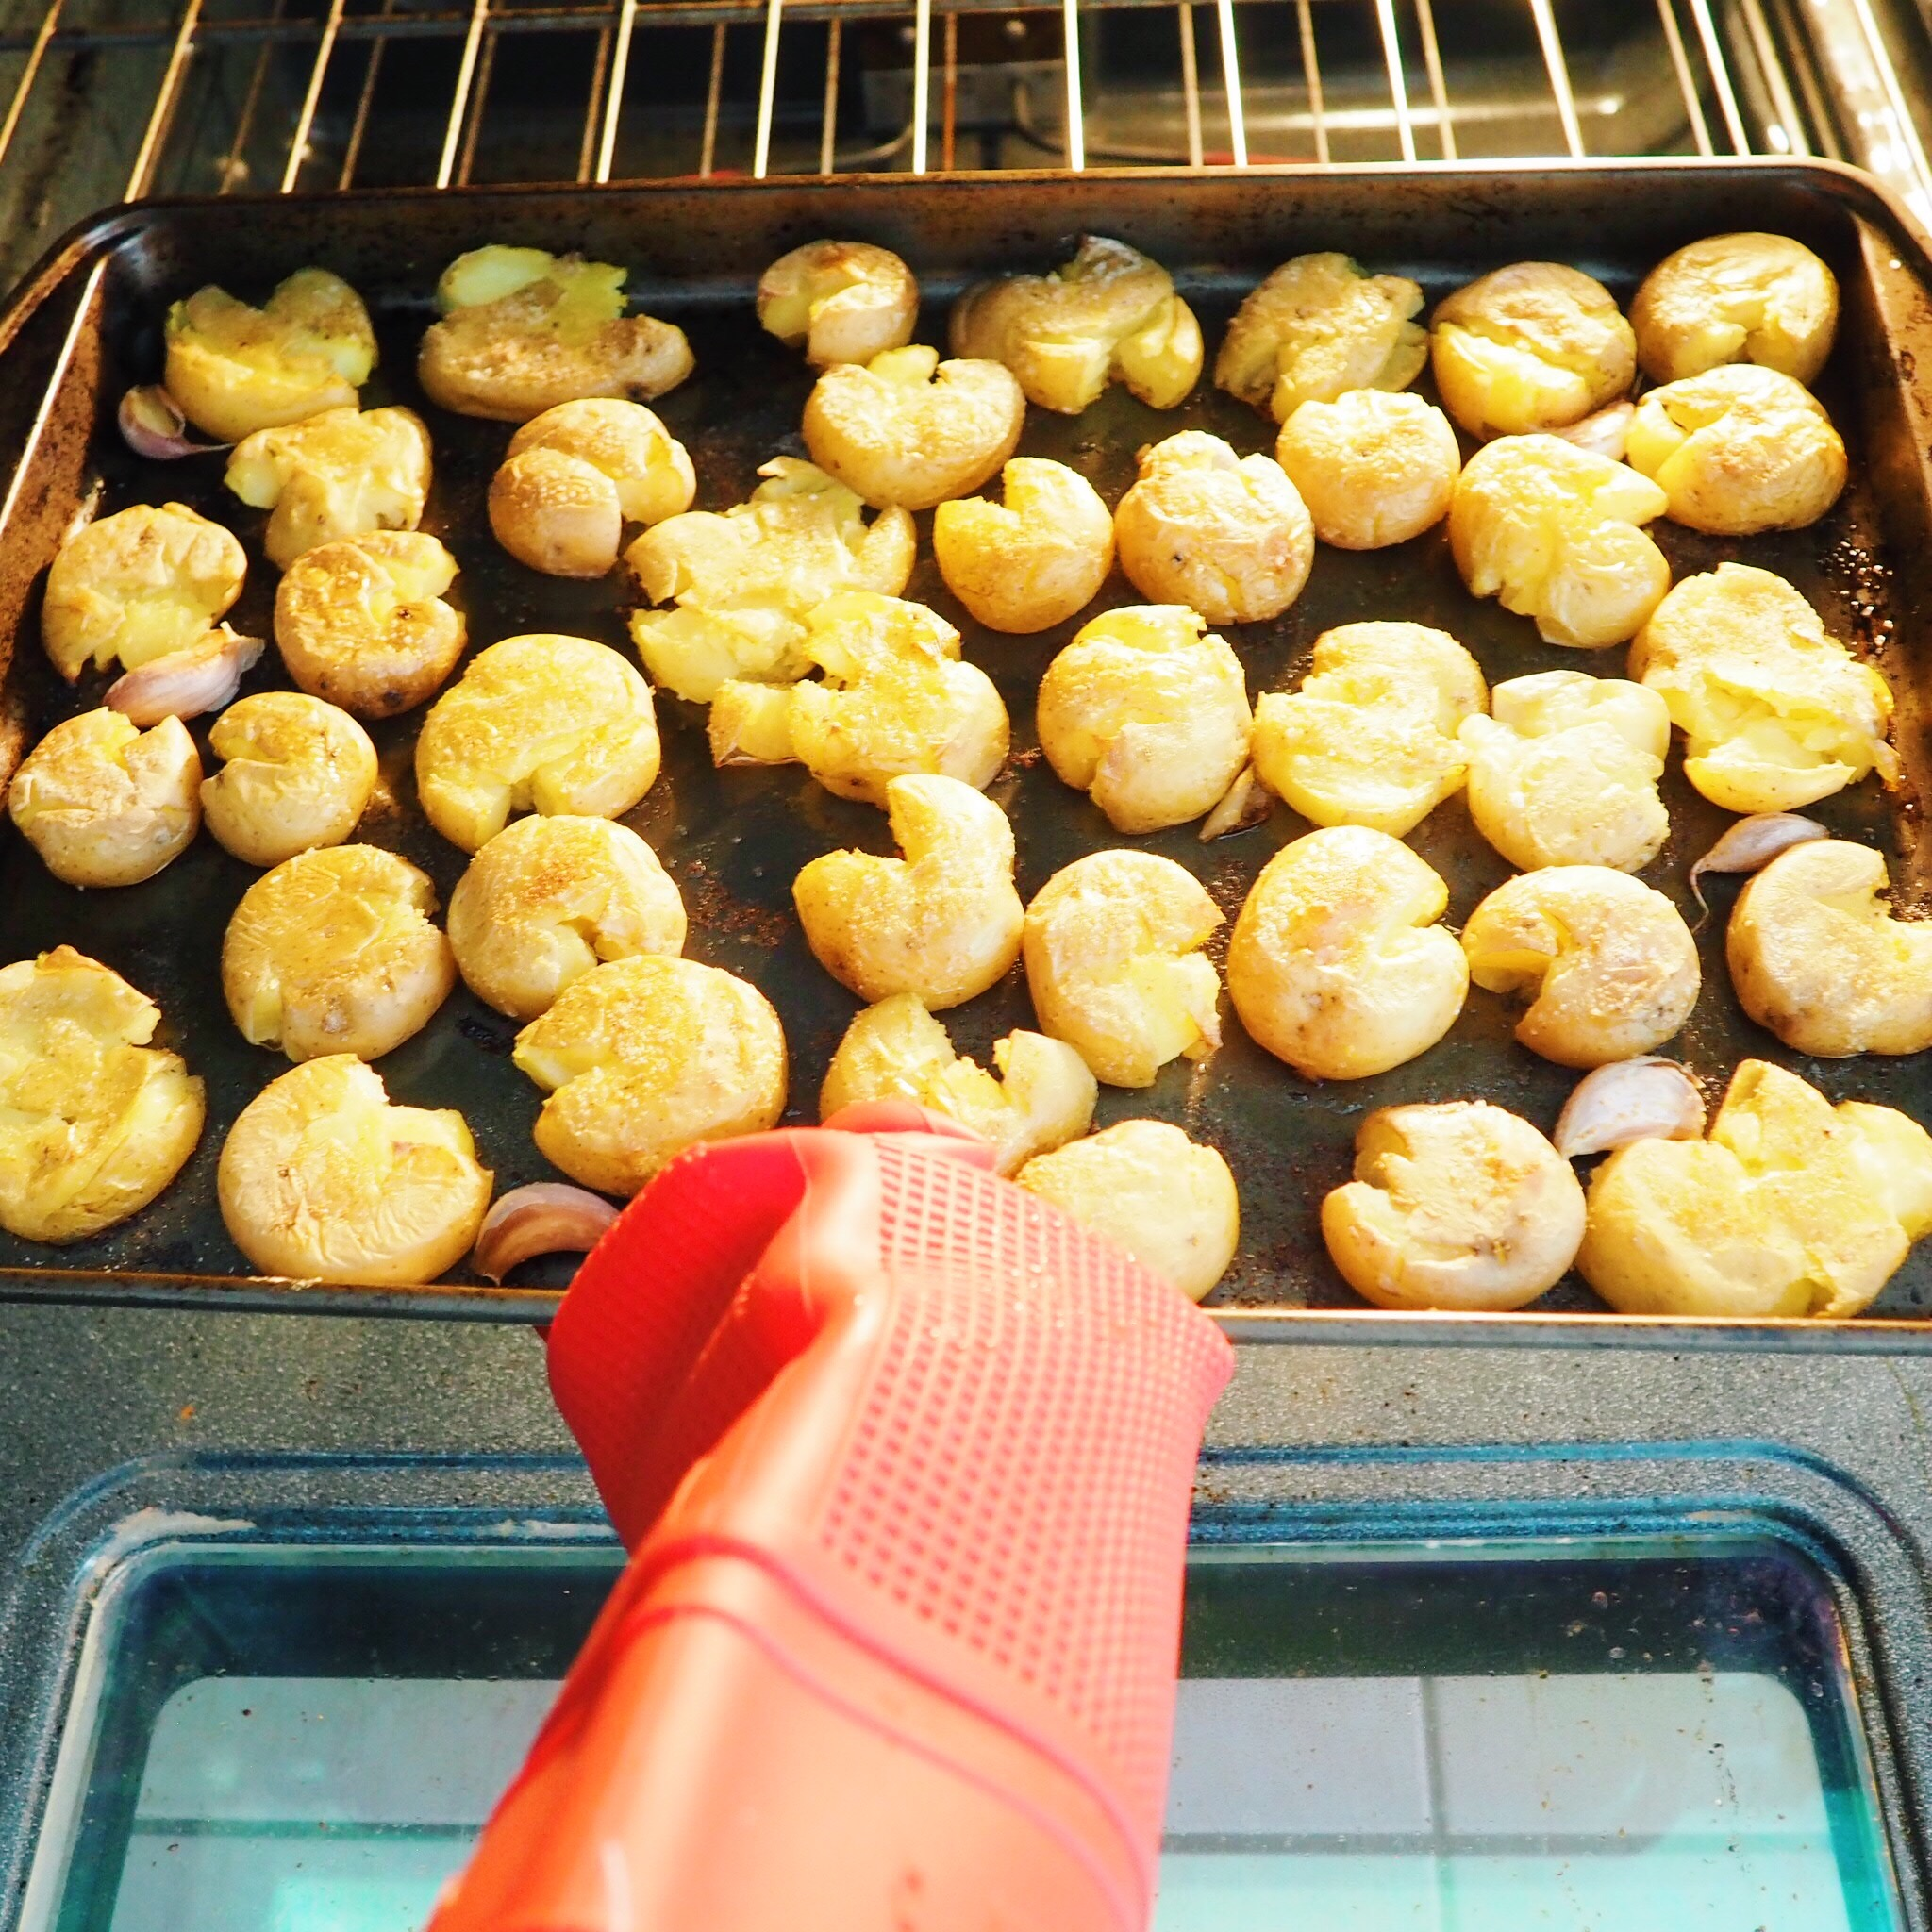 remove them from oven